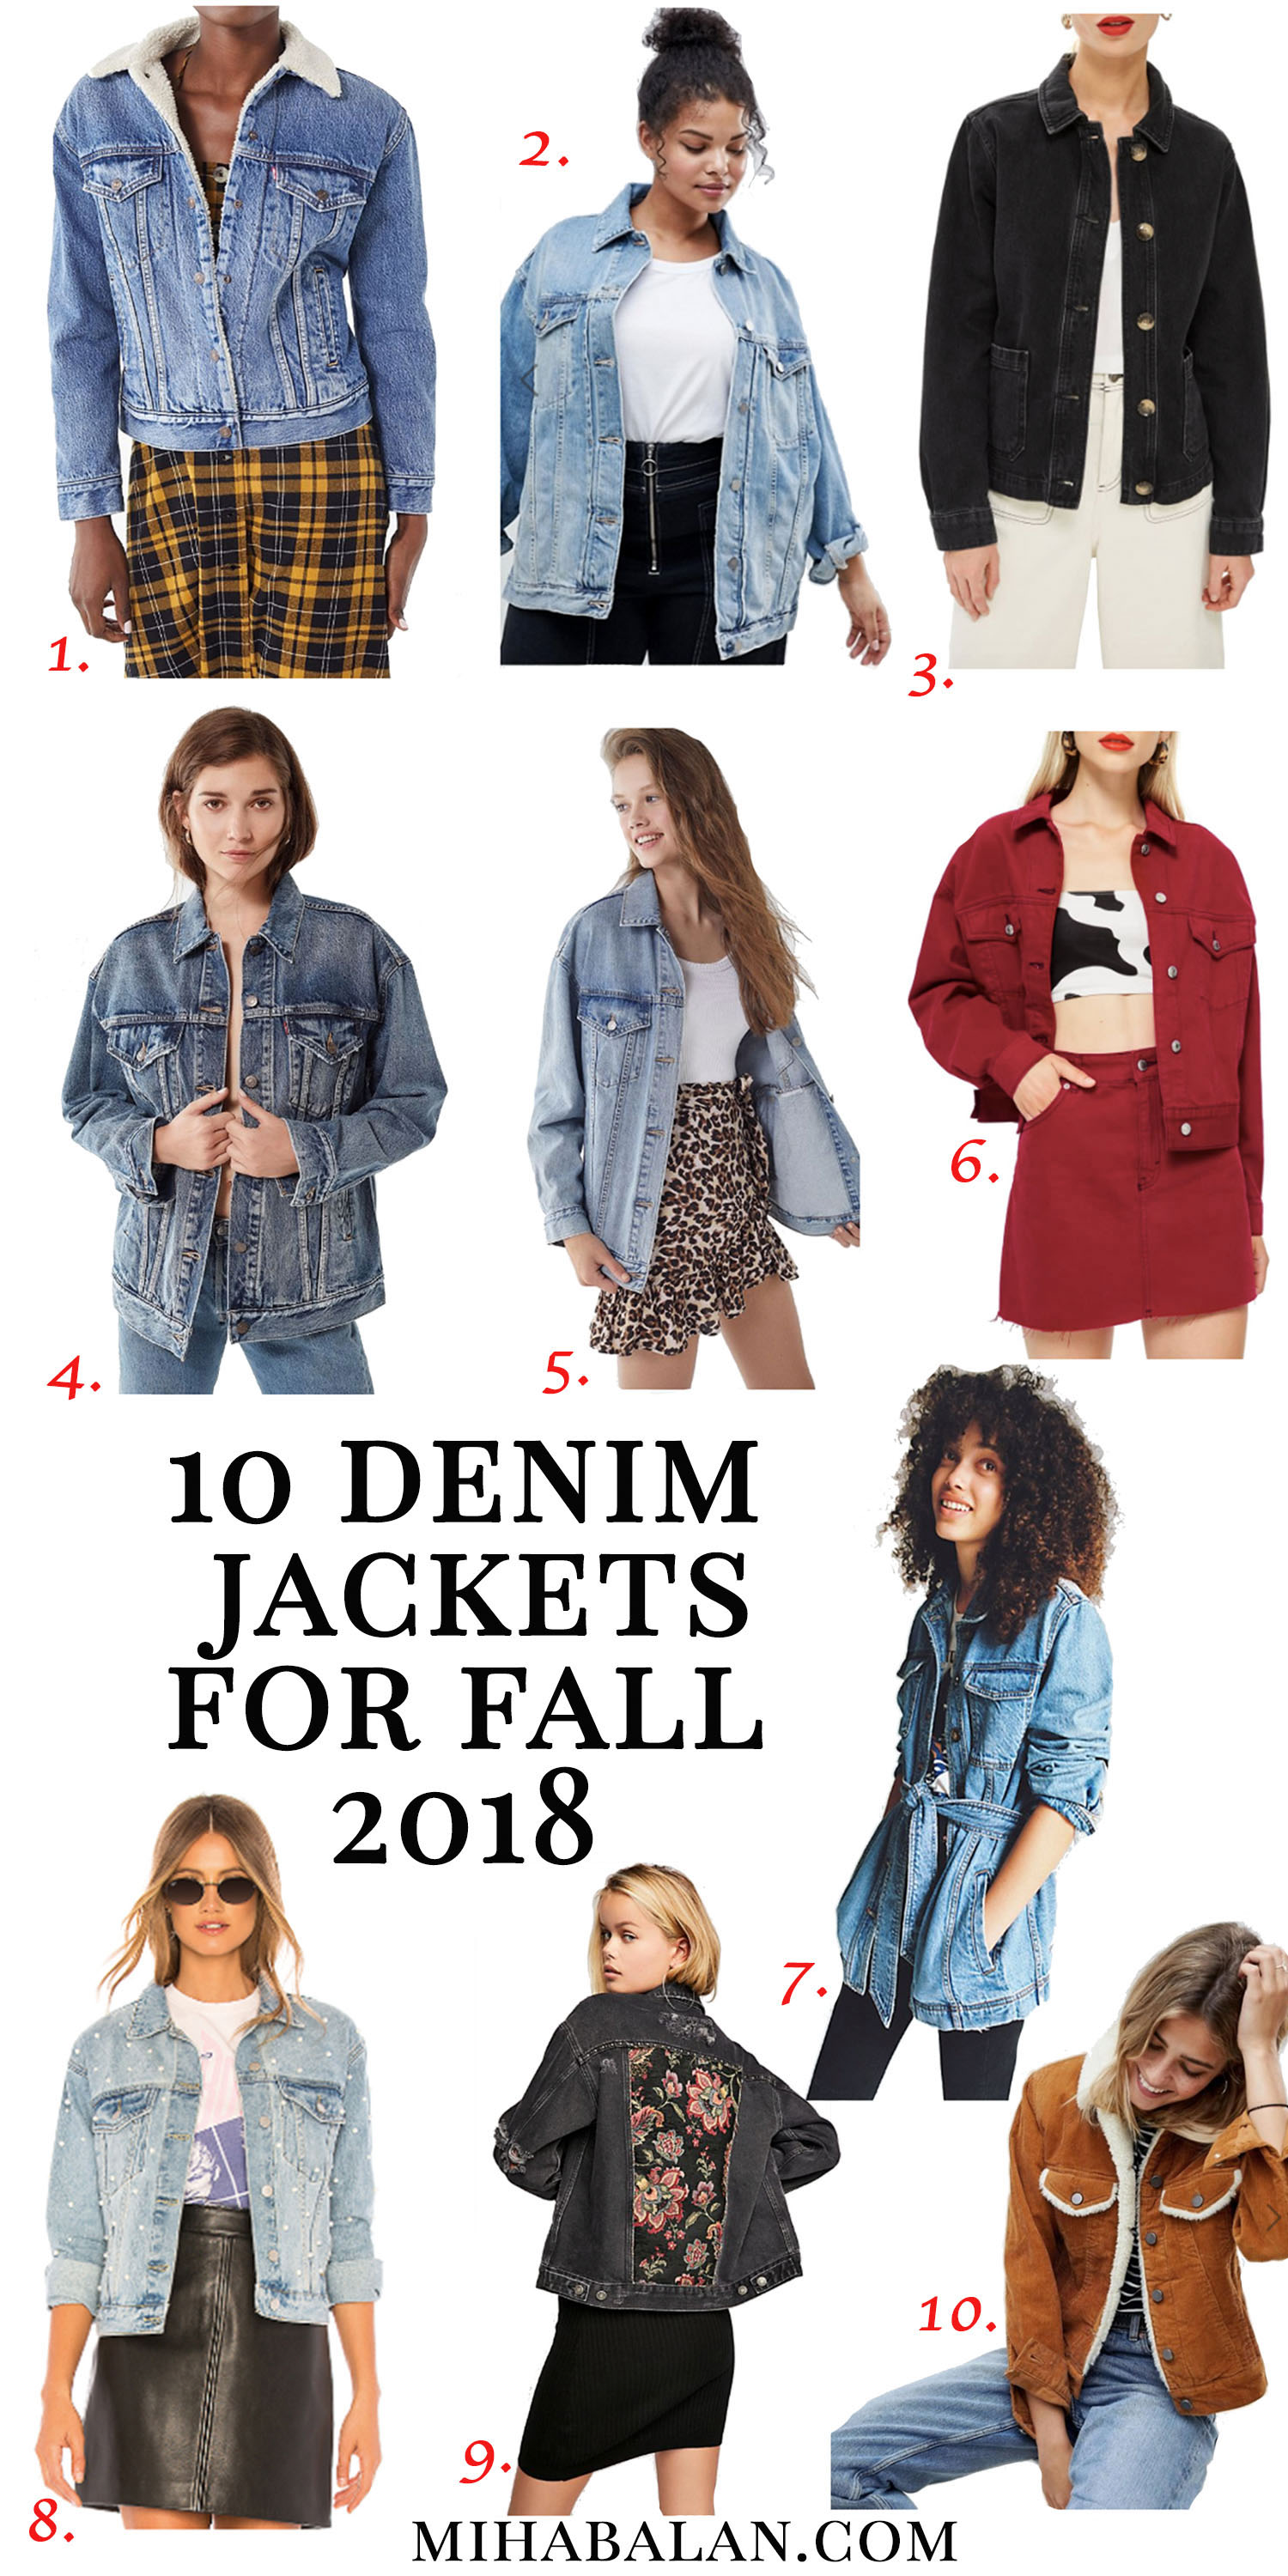 10 denim jackets for fall 2018, denim addicted, fall fashion, fall trends, fall essentials